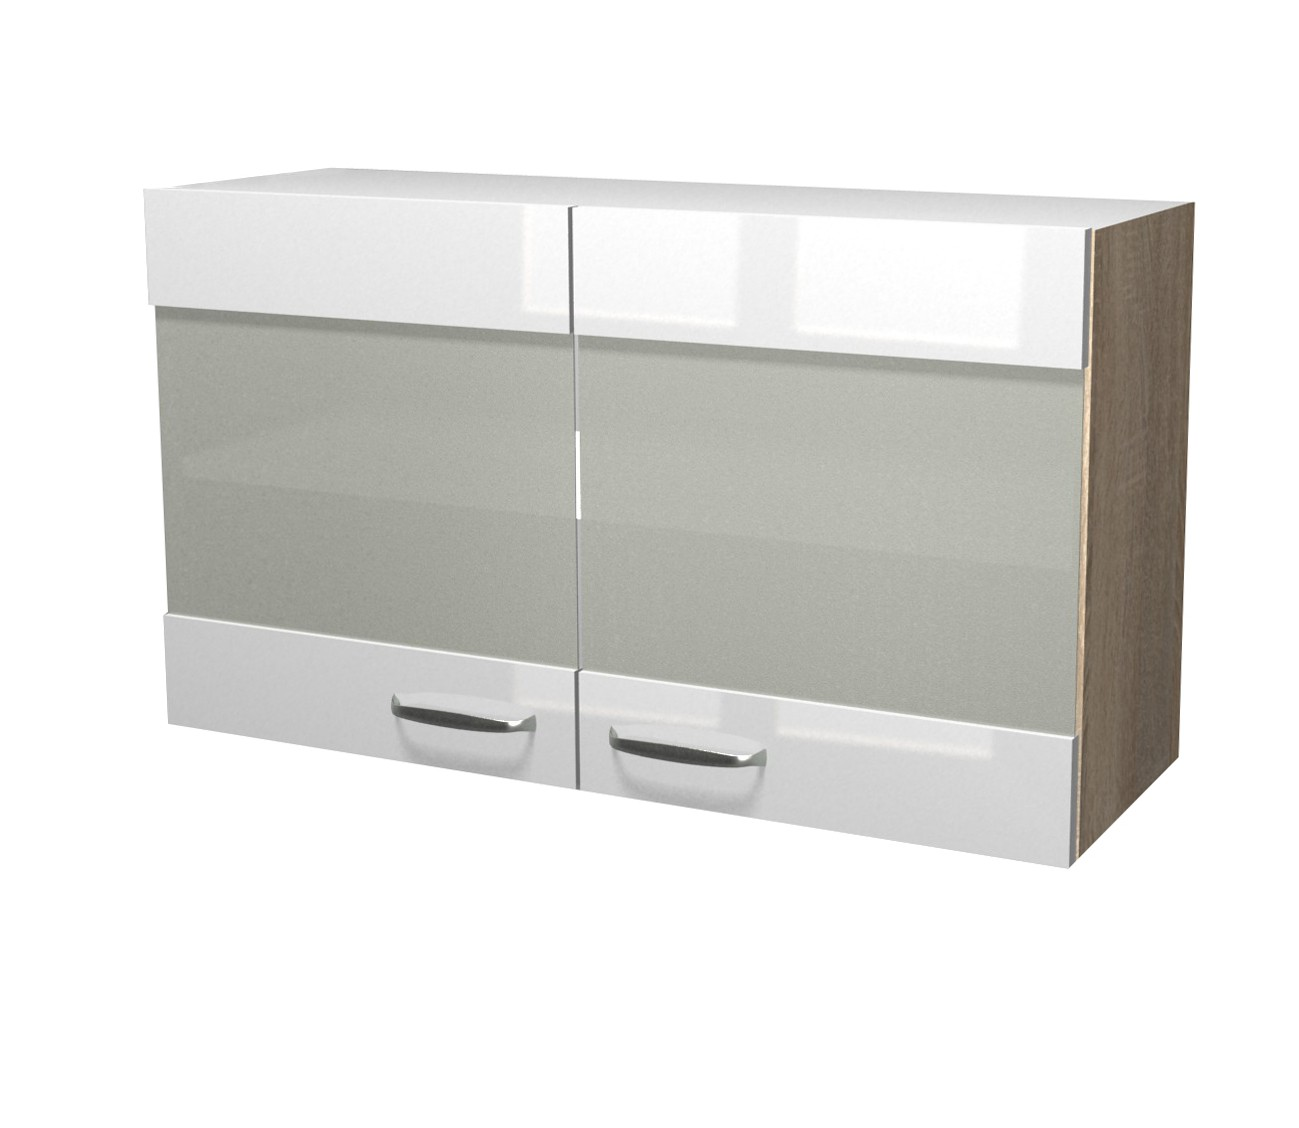 neu k chen h ngeschrank venedig glash ngeschrank 100cm weiss sonoma ebay. Black Bedroom Furniture Sets. Home Design Ideas